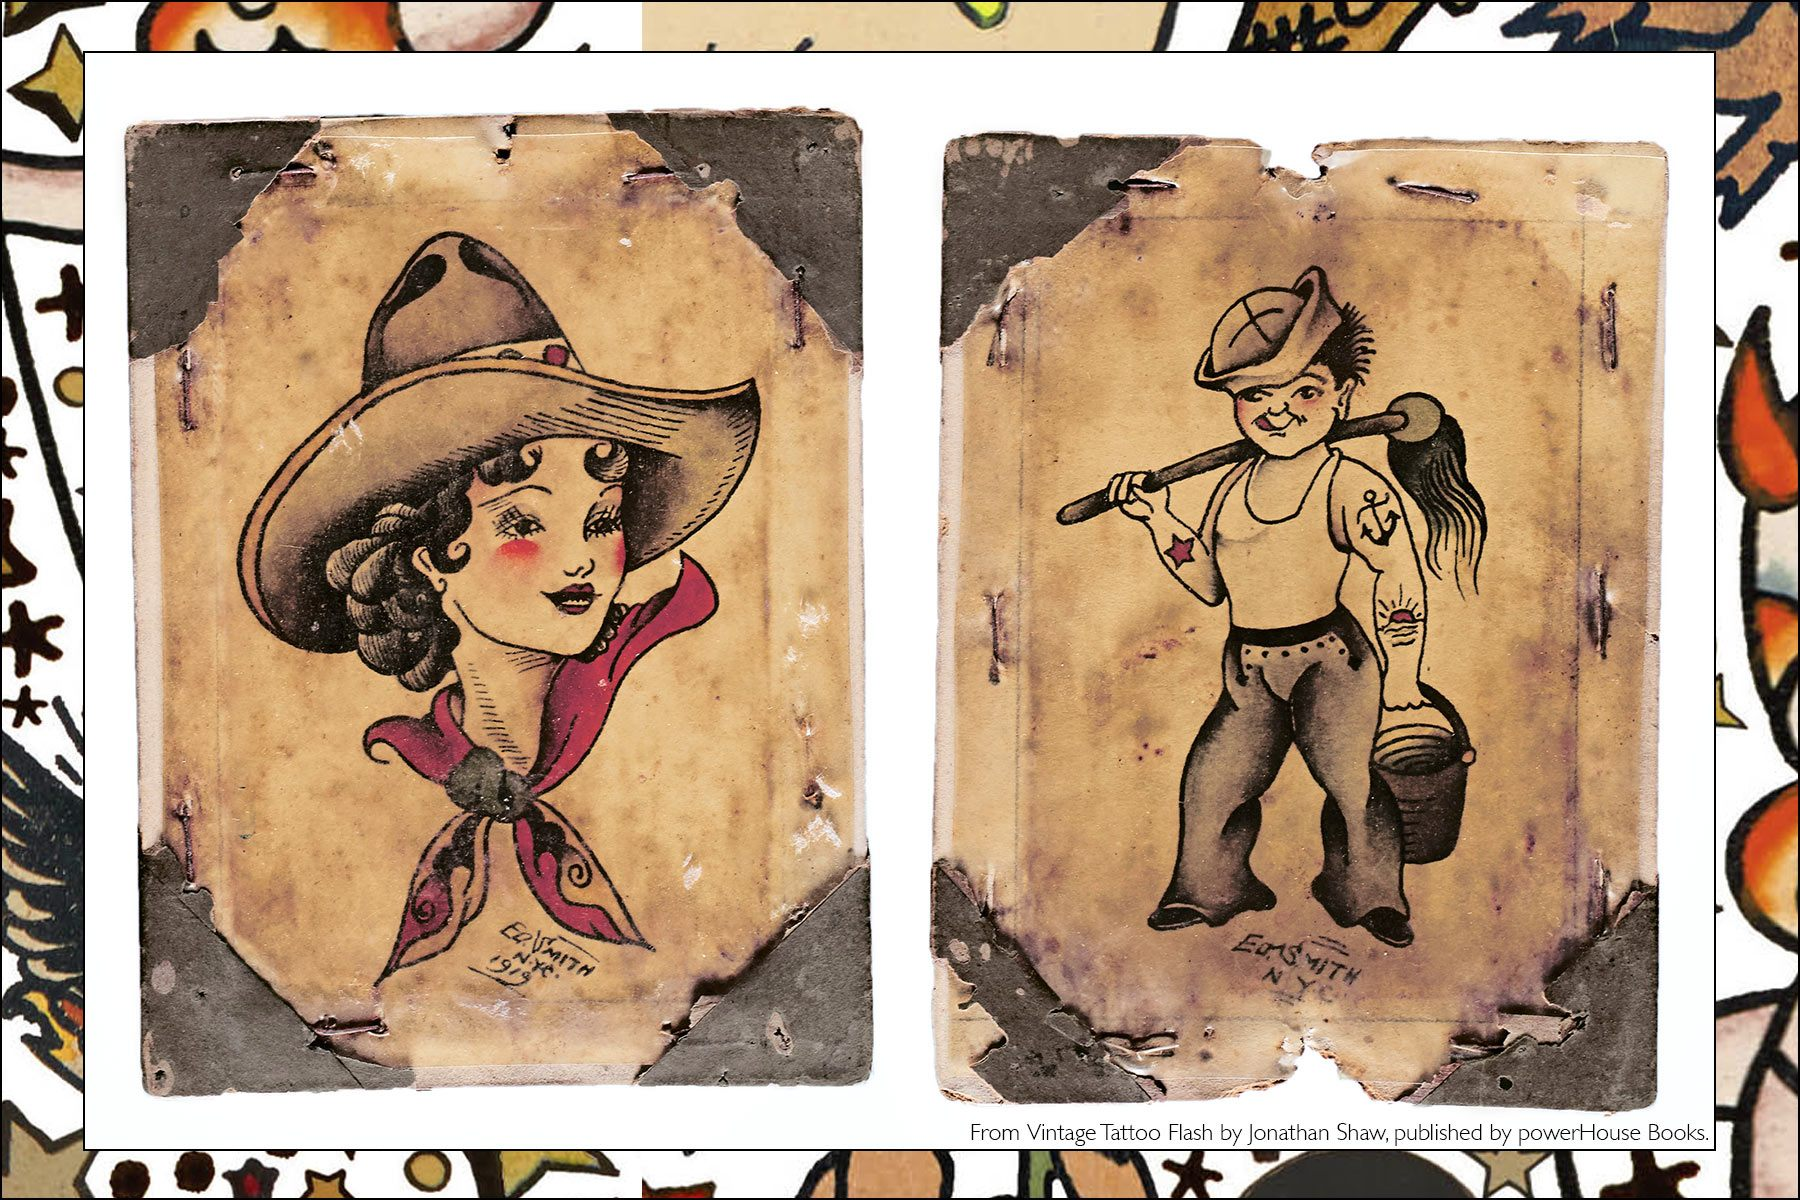 From the newly released publication, Vintage Tattoo Flash by Jonathan Shaw, from Powerhouse Books. Ponyboy magazine NY.